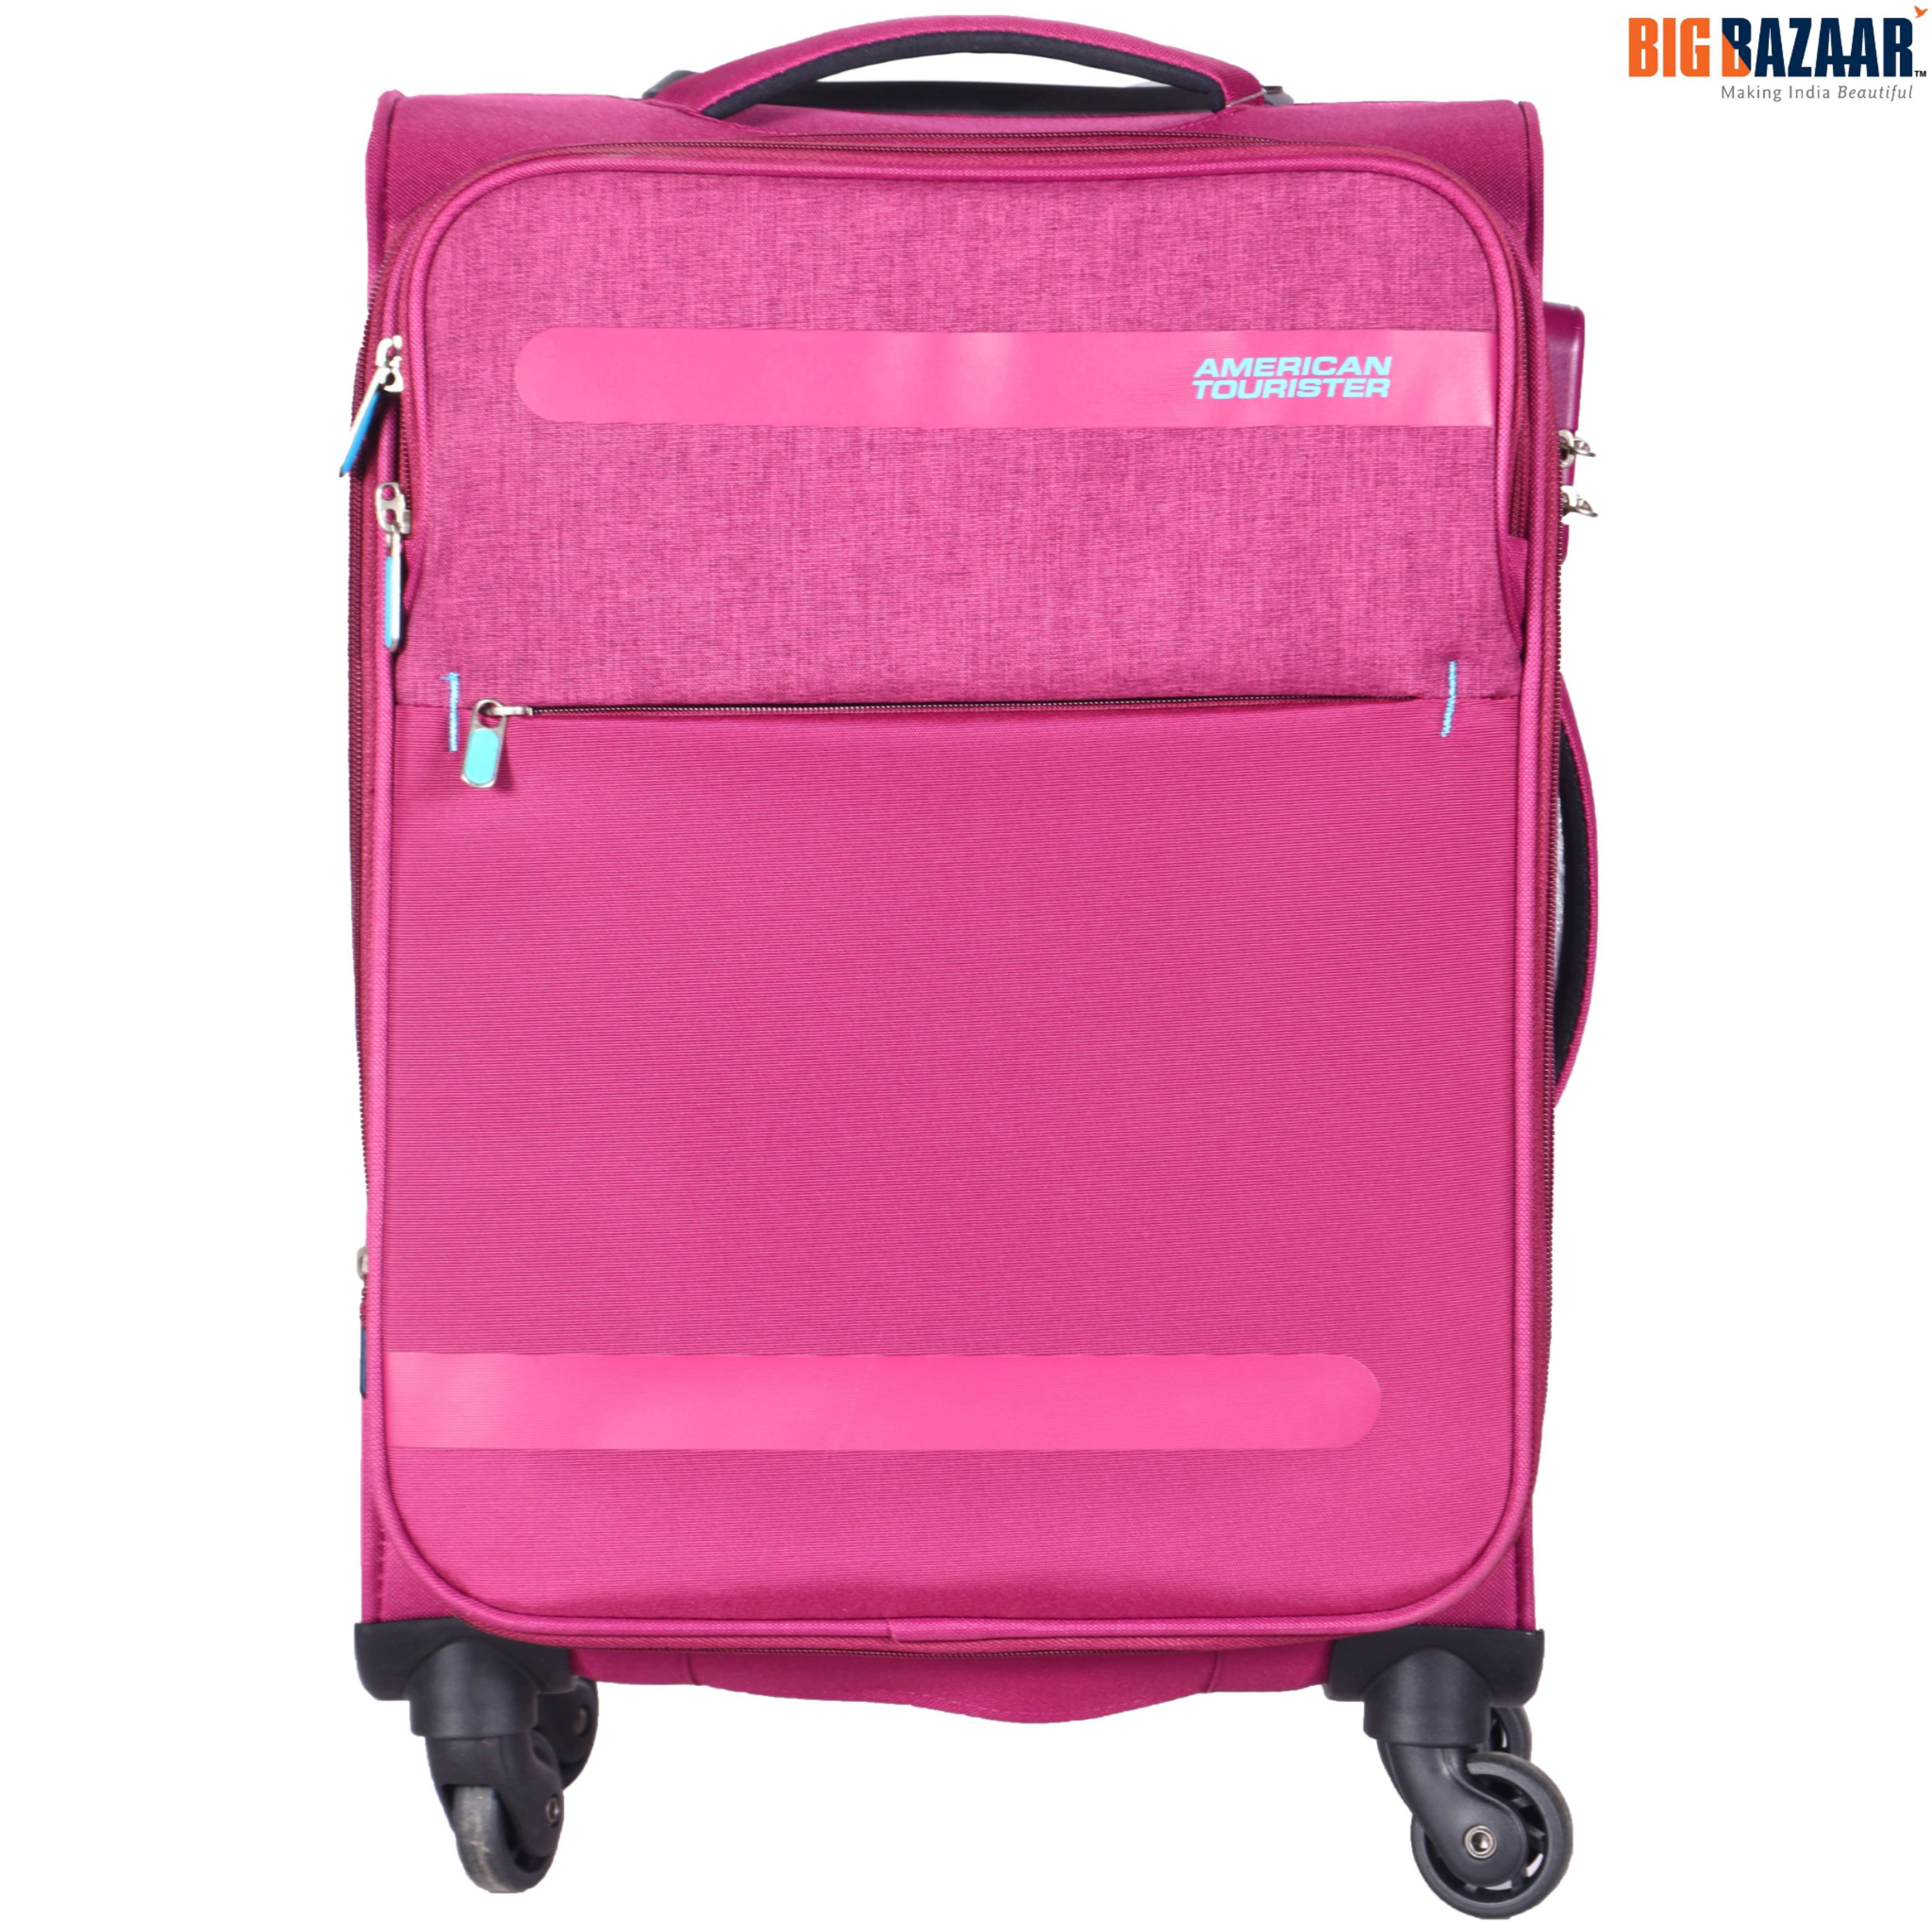 Buy American Tourister Travel Bags Online India- Fenix Toulouse Handball ae30d135dd438